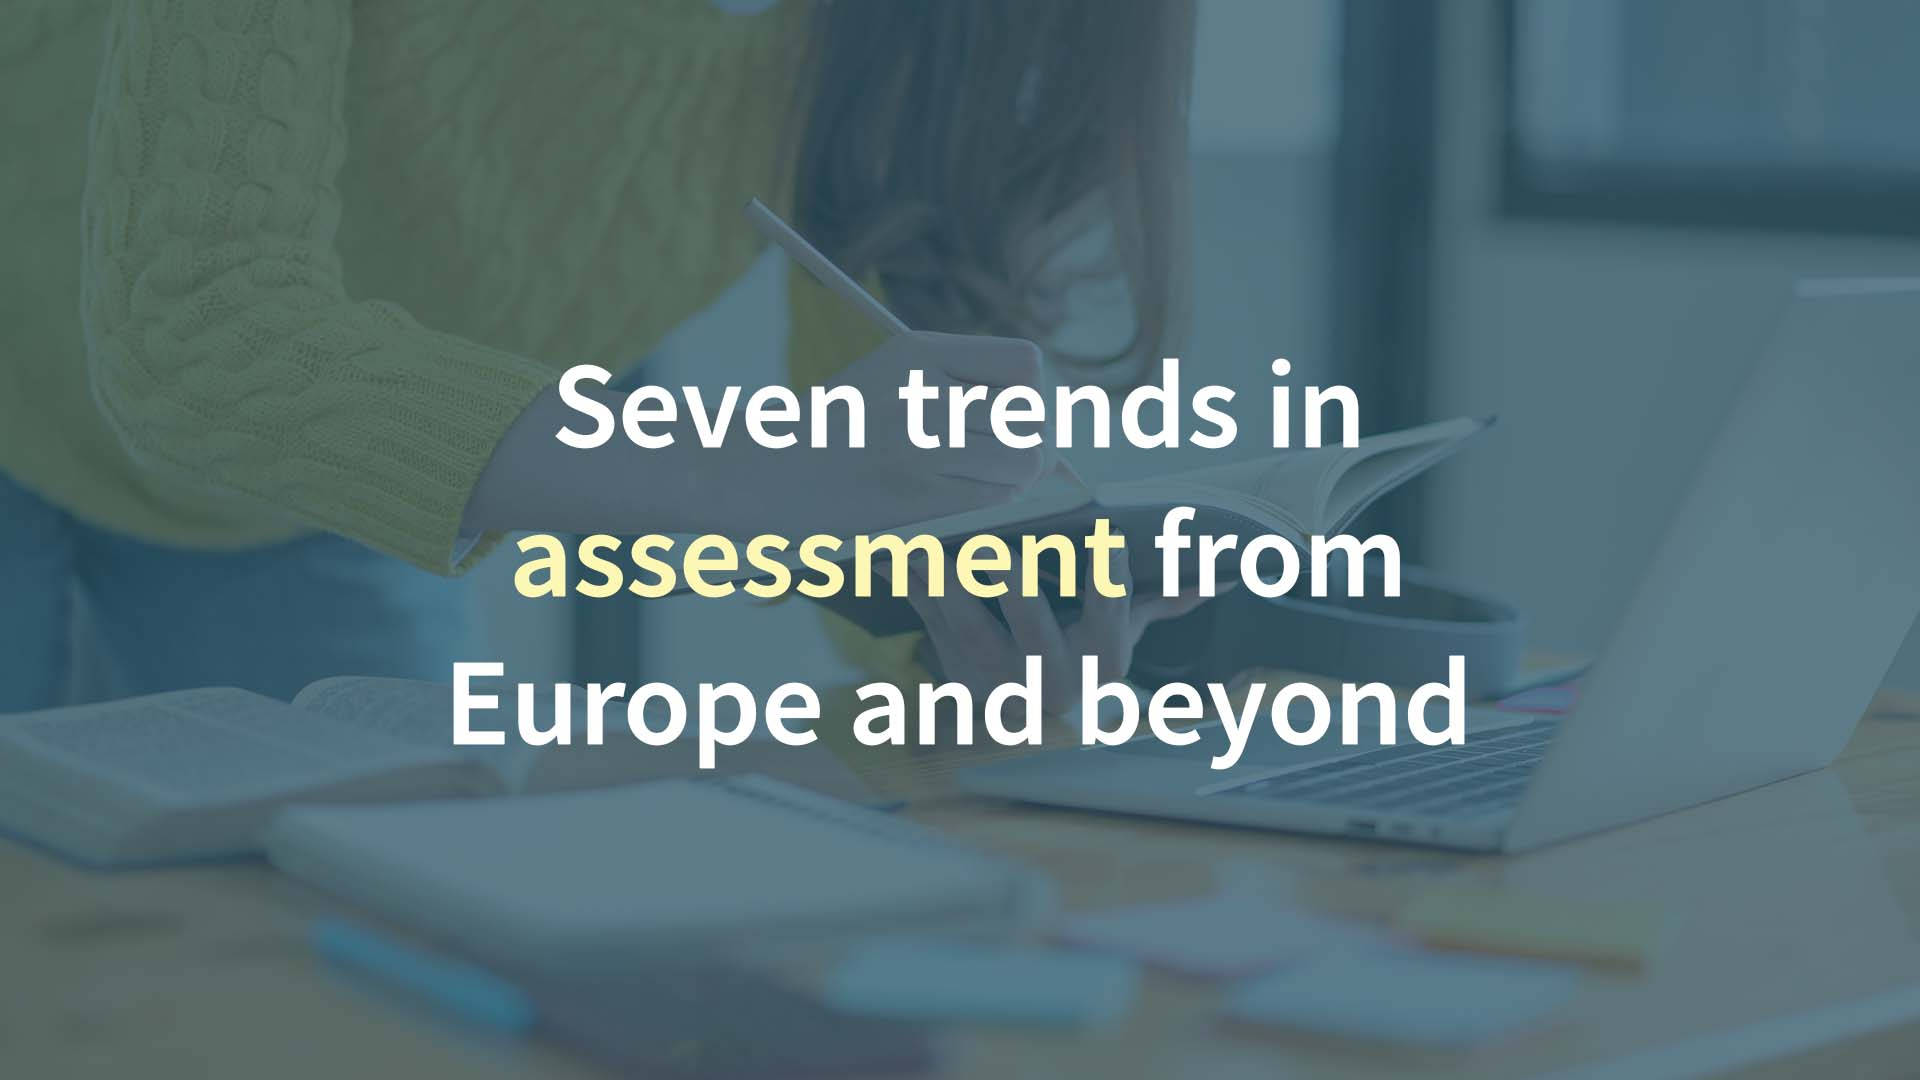 Seven trends in assessment from Europe and beyond